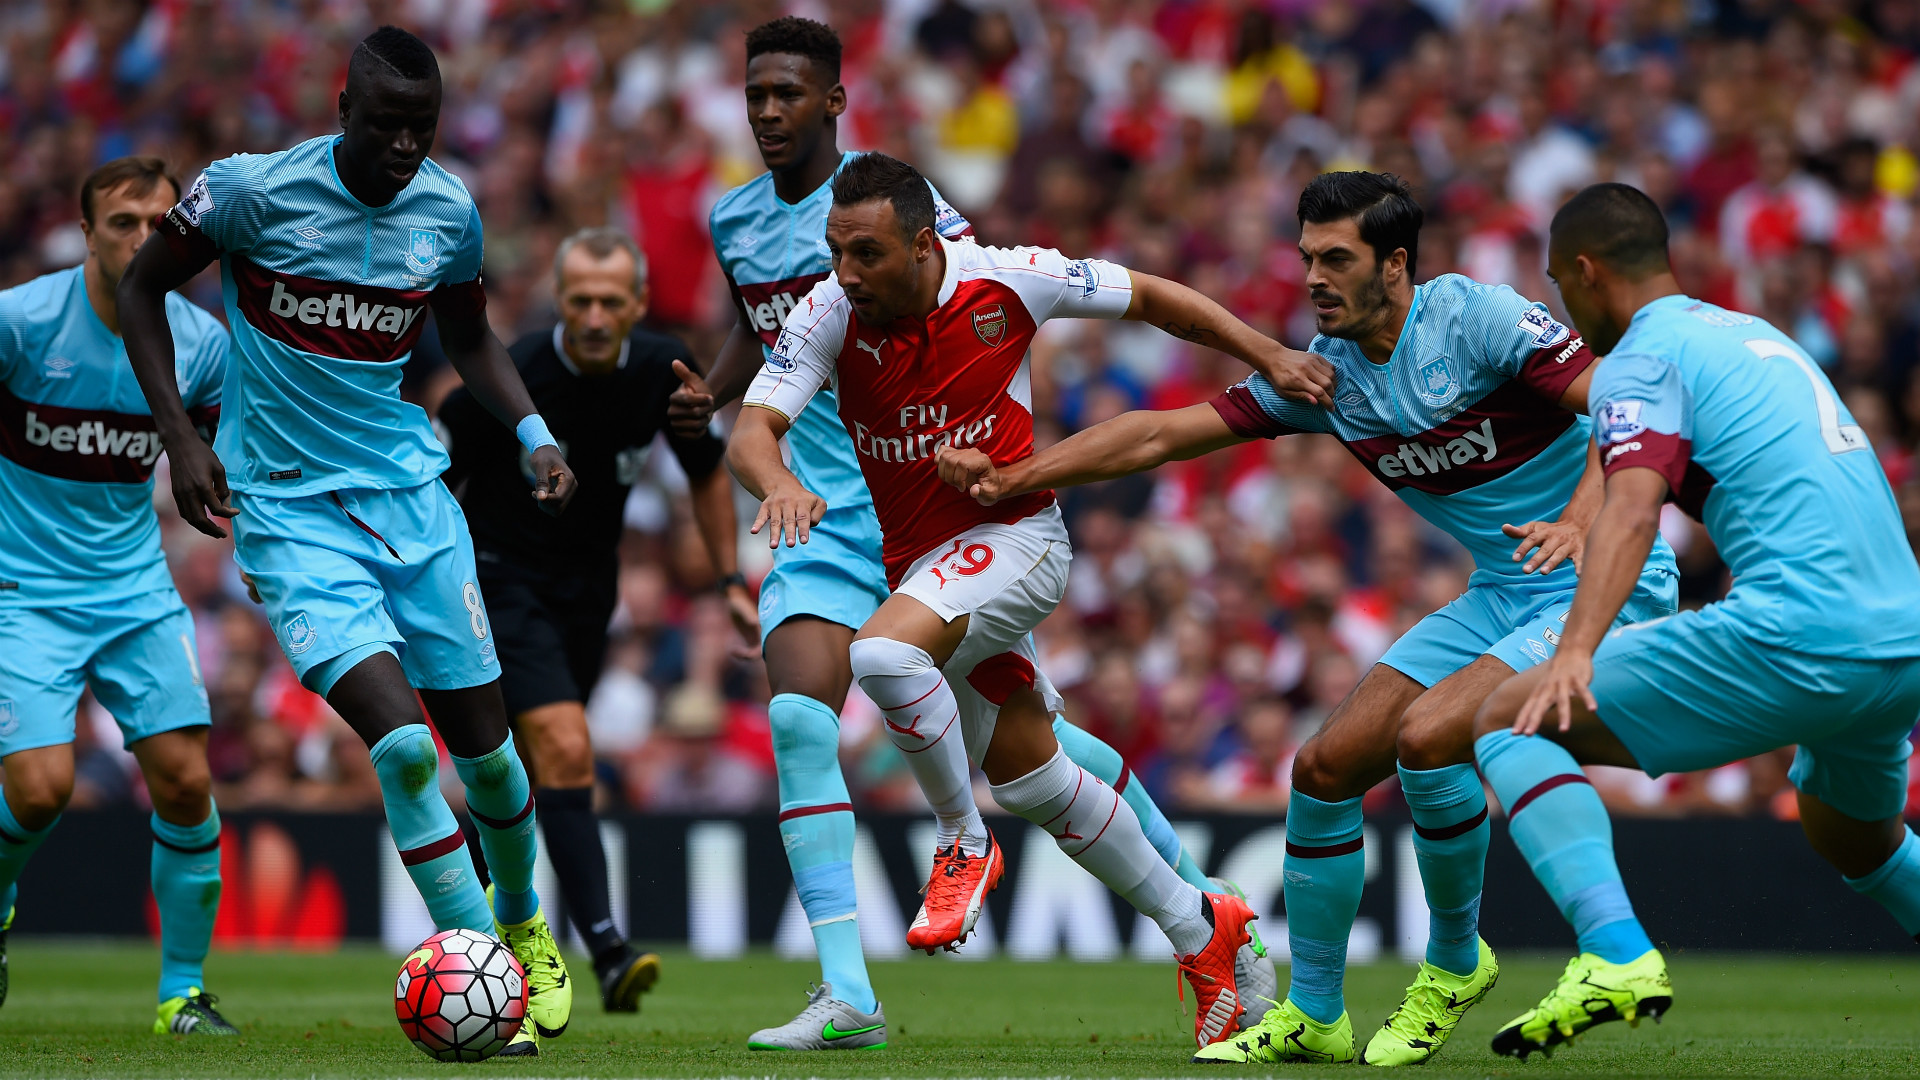 Arsenal vs West Ham United